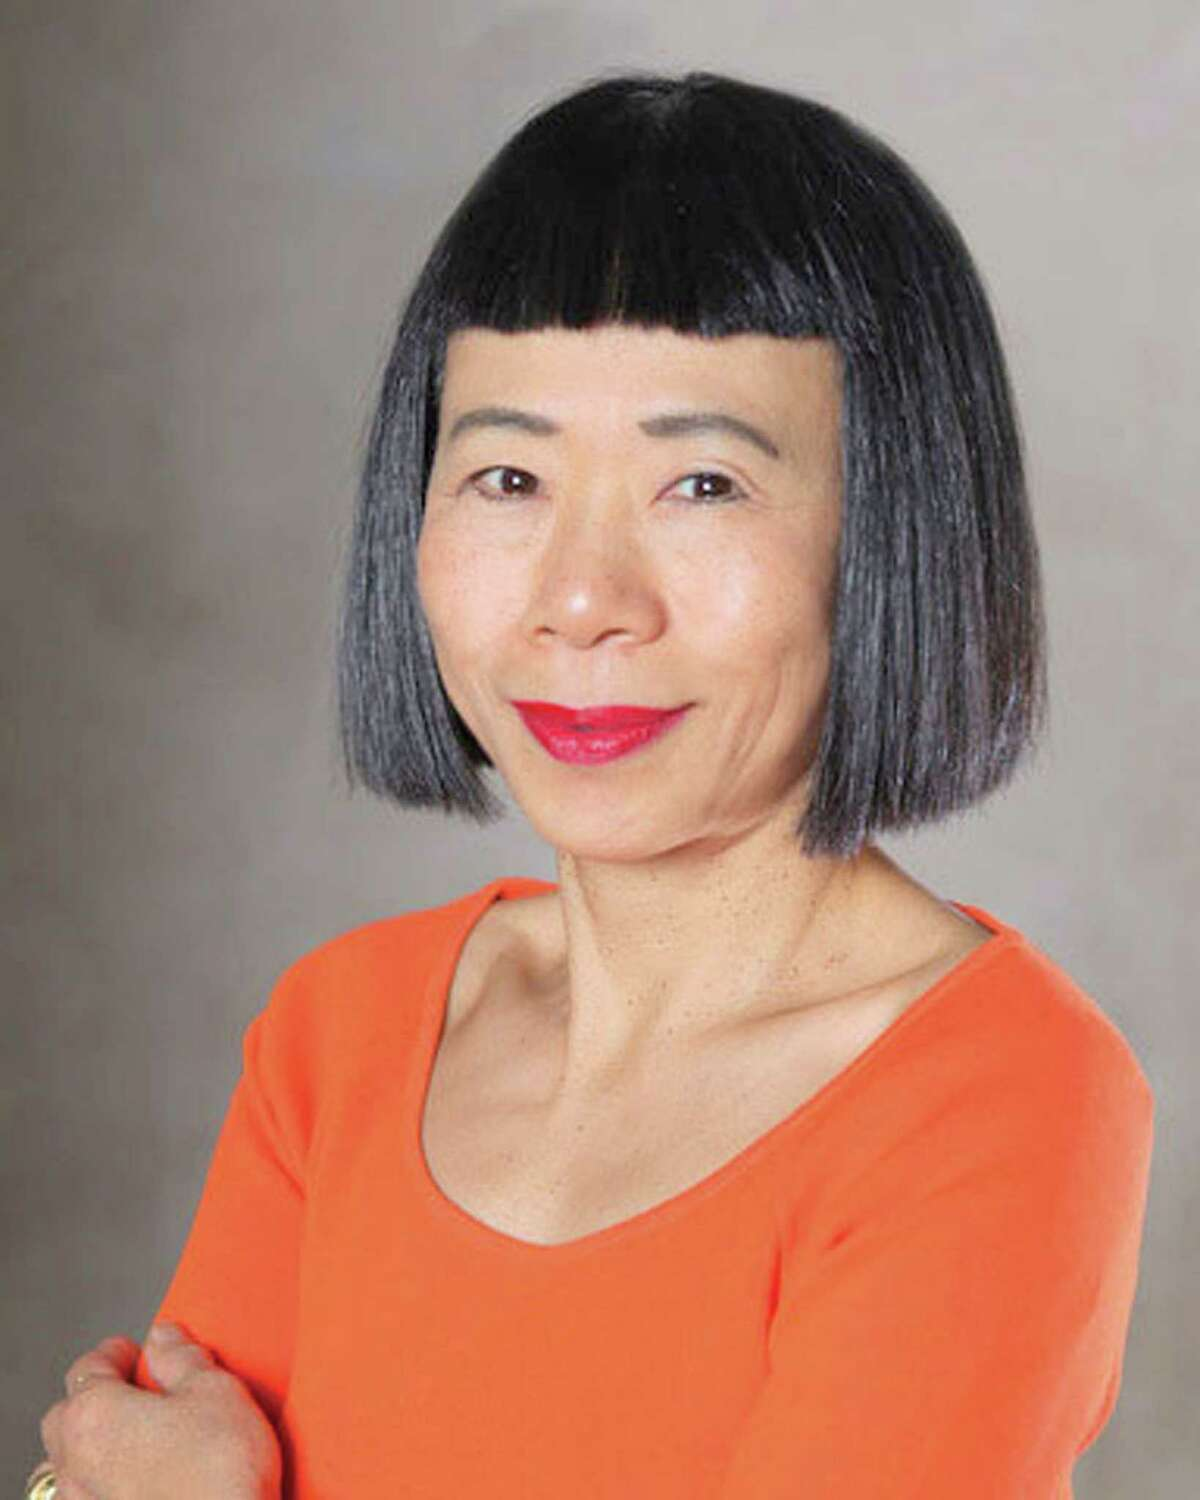 """Meet the author Who: Hiroko Shimbo Her book: """"Hiroko's American Kitchen"""" (Andrews McMeel; $24.99) What: Class on Japanese cooking techniques Where: Central Market, 3815 Westheimer When: 6:30-9 p.m. Saturday Cost: $70 (cost includes a copy of her book) Register: www.centralmarket.com"""